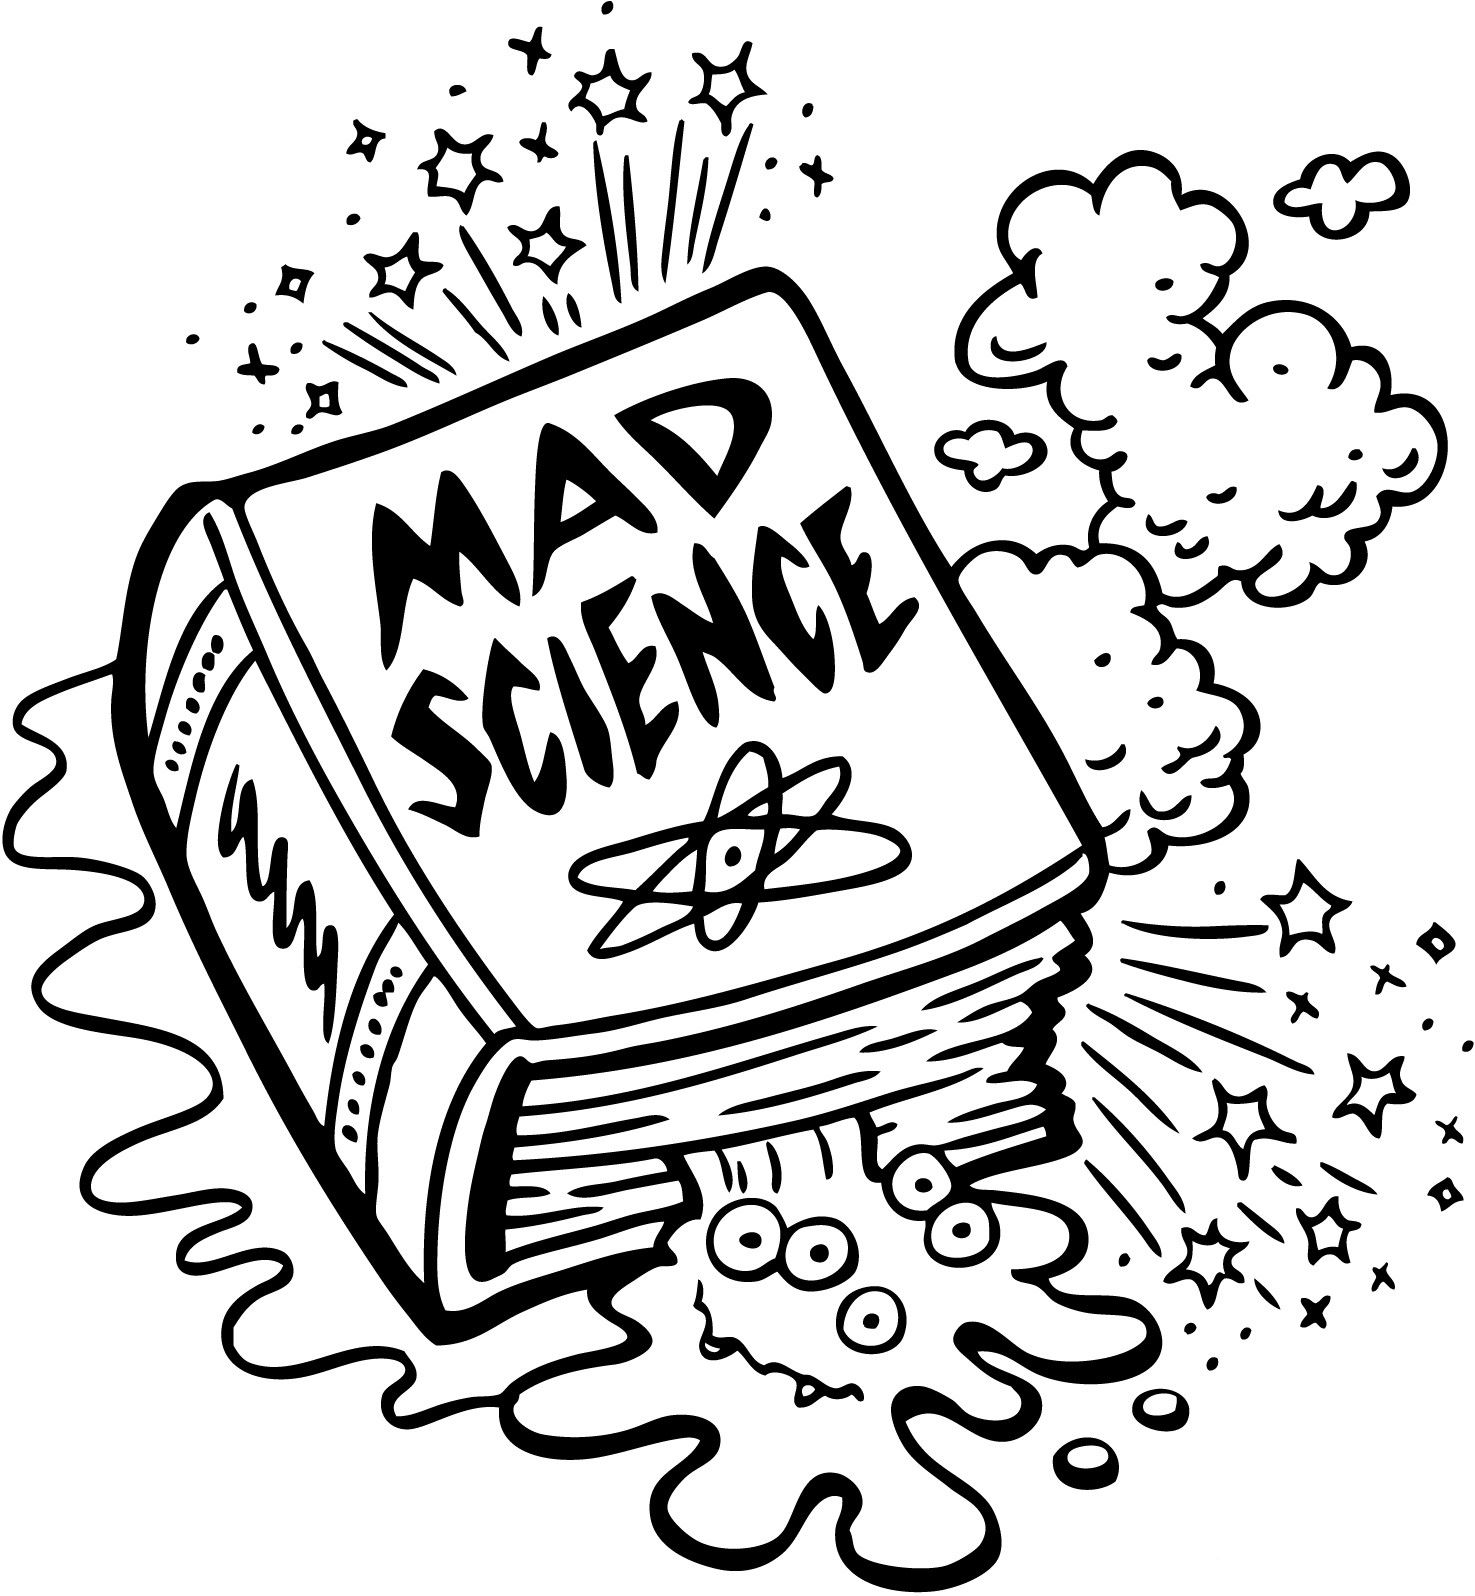 Science Coloring Pages Best Coloring Pages For Kids Coloring Book Pages Coloring Pages For Kids Coloring Pages